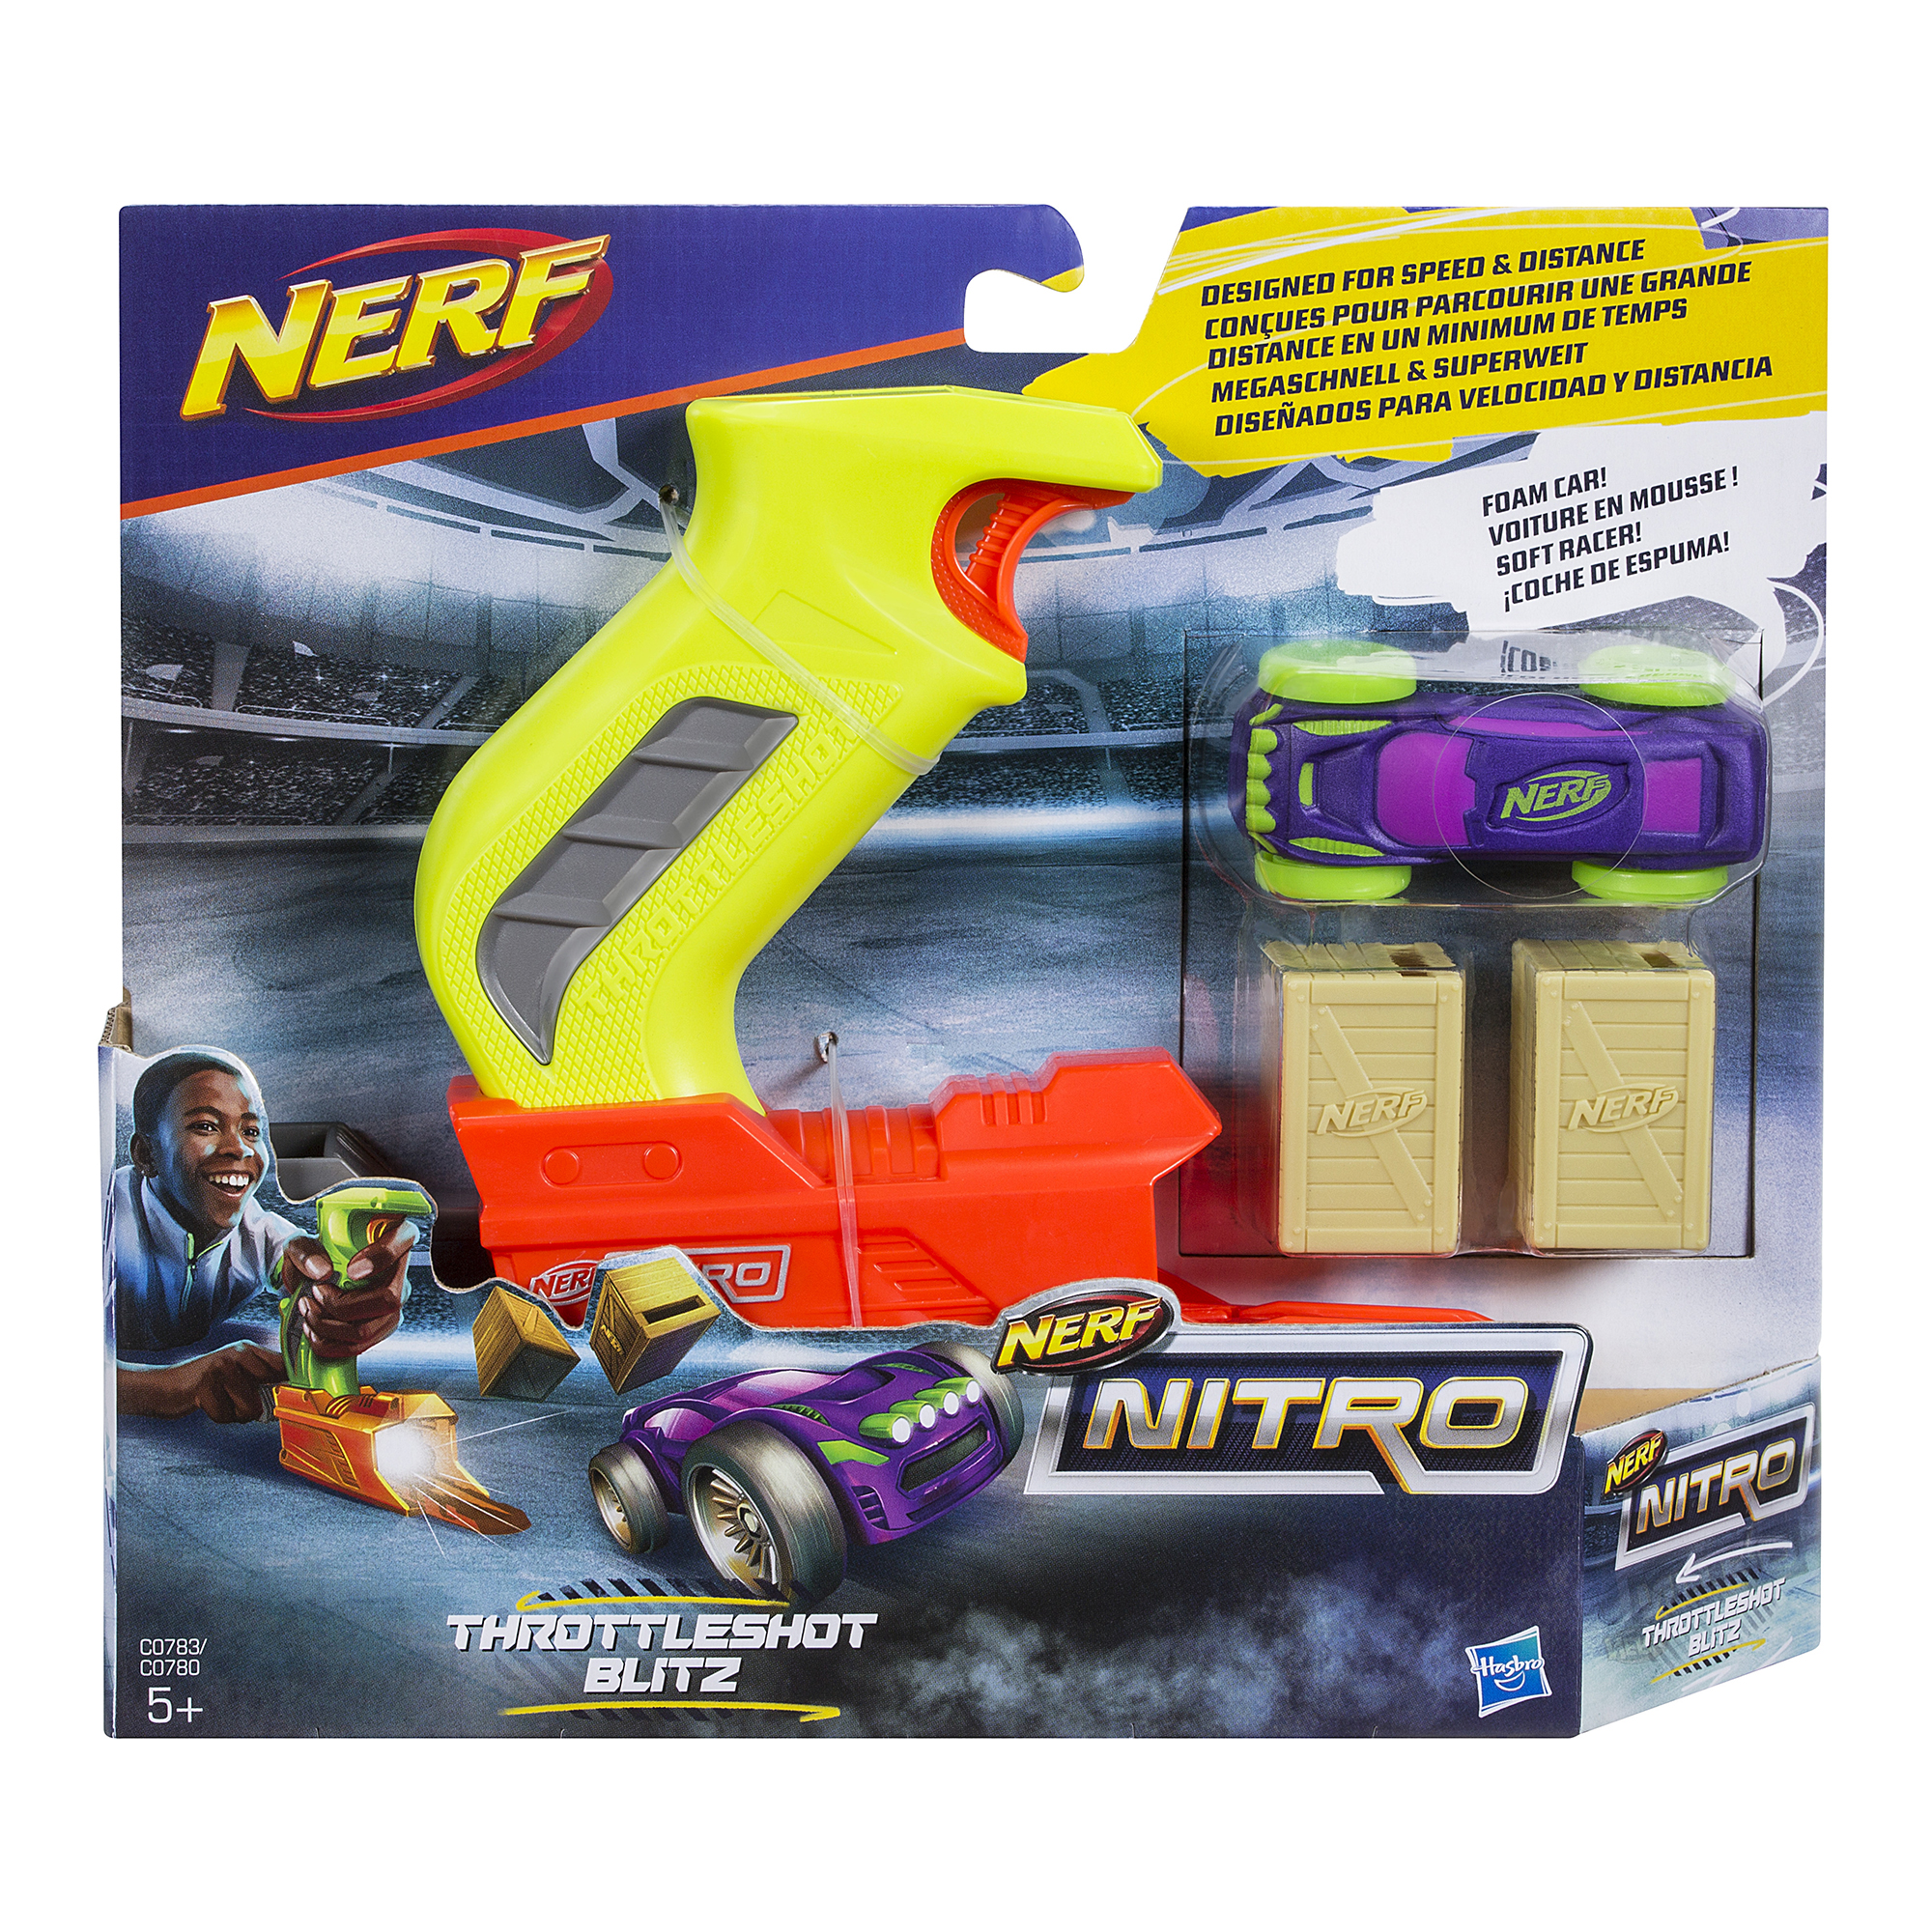 Nerf Nitro ThrottleShot Blitz Assortment